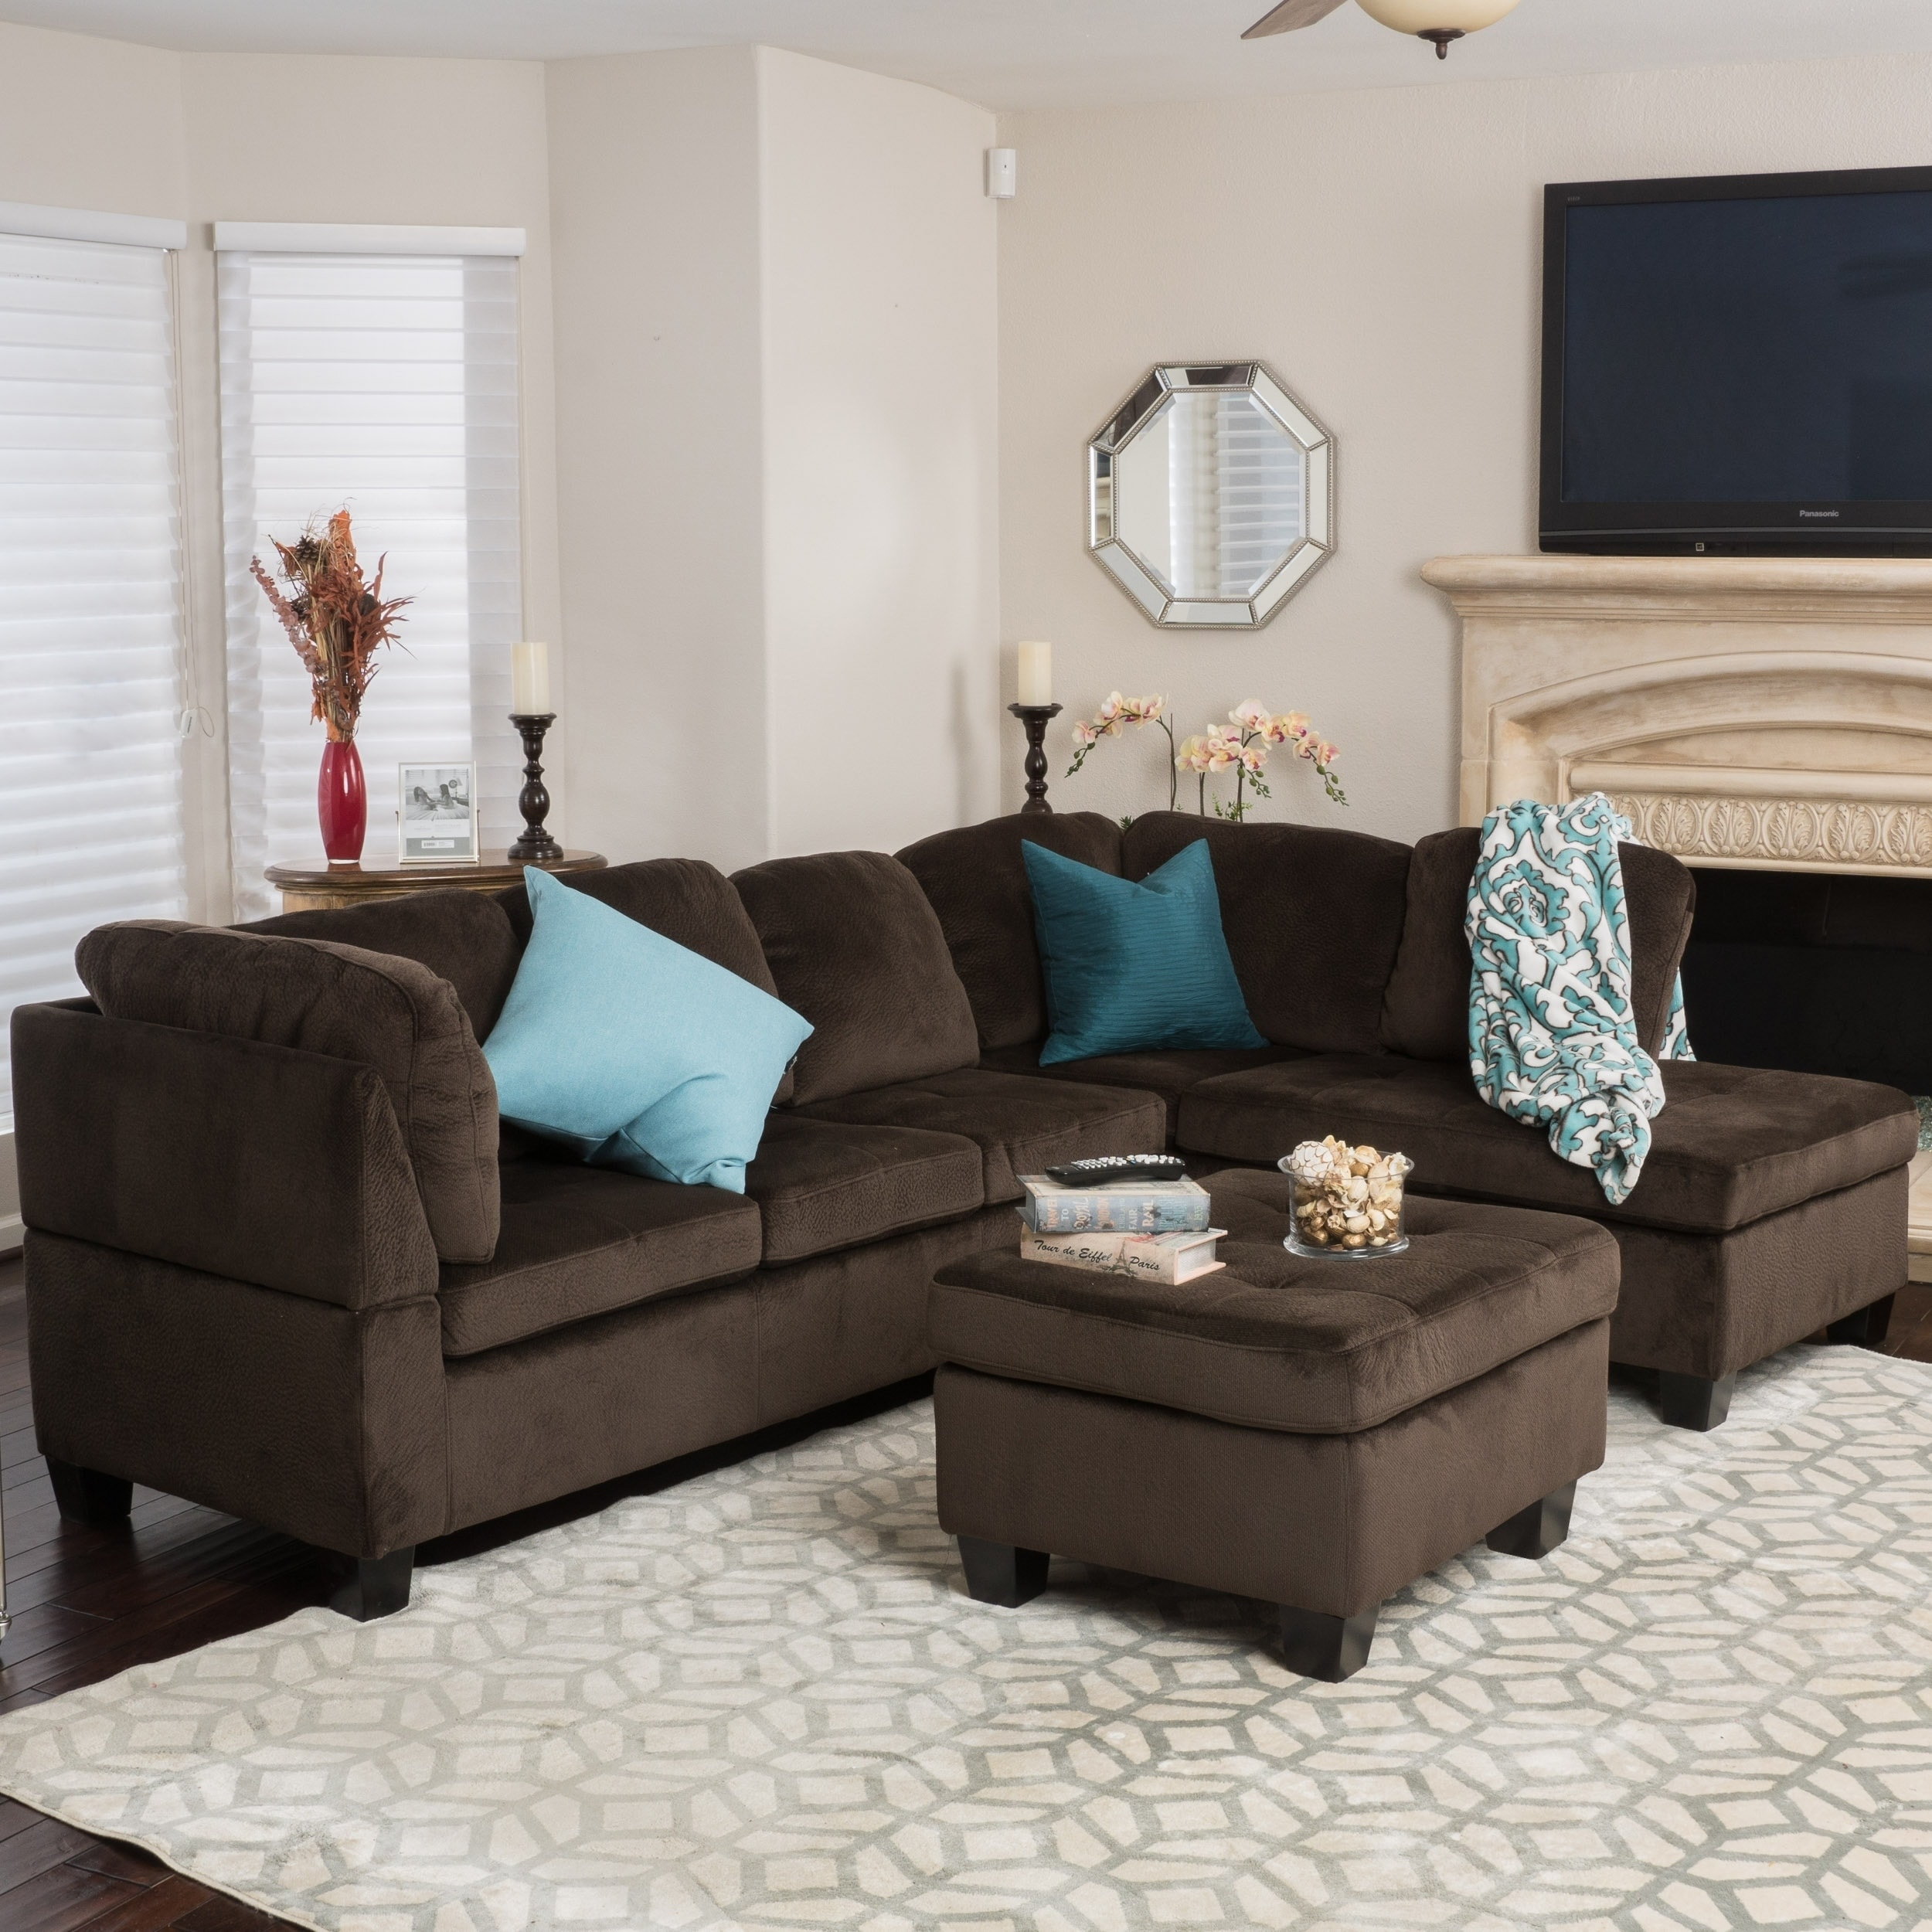 Shop canterbury 3 piece fabric sectional sofa set by christopher knight home on sale free shipping today overstock com 10814121